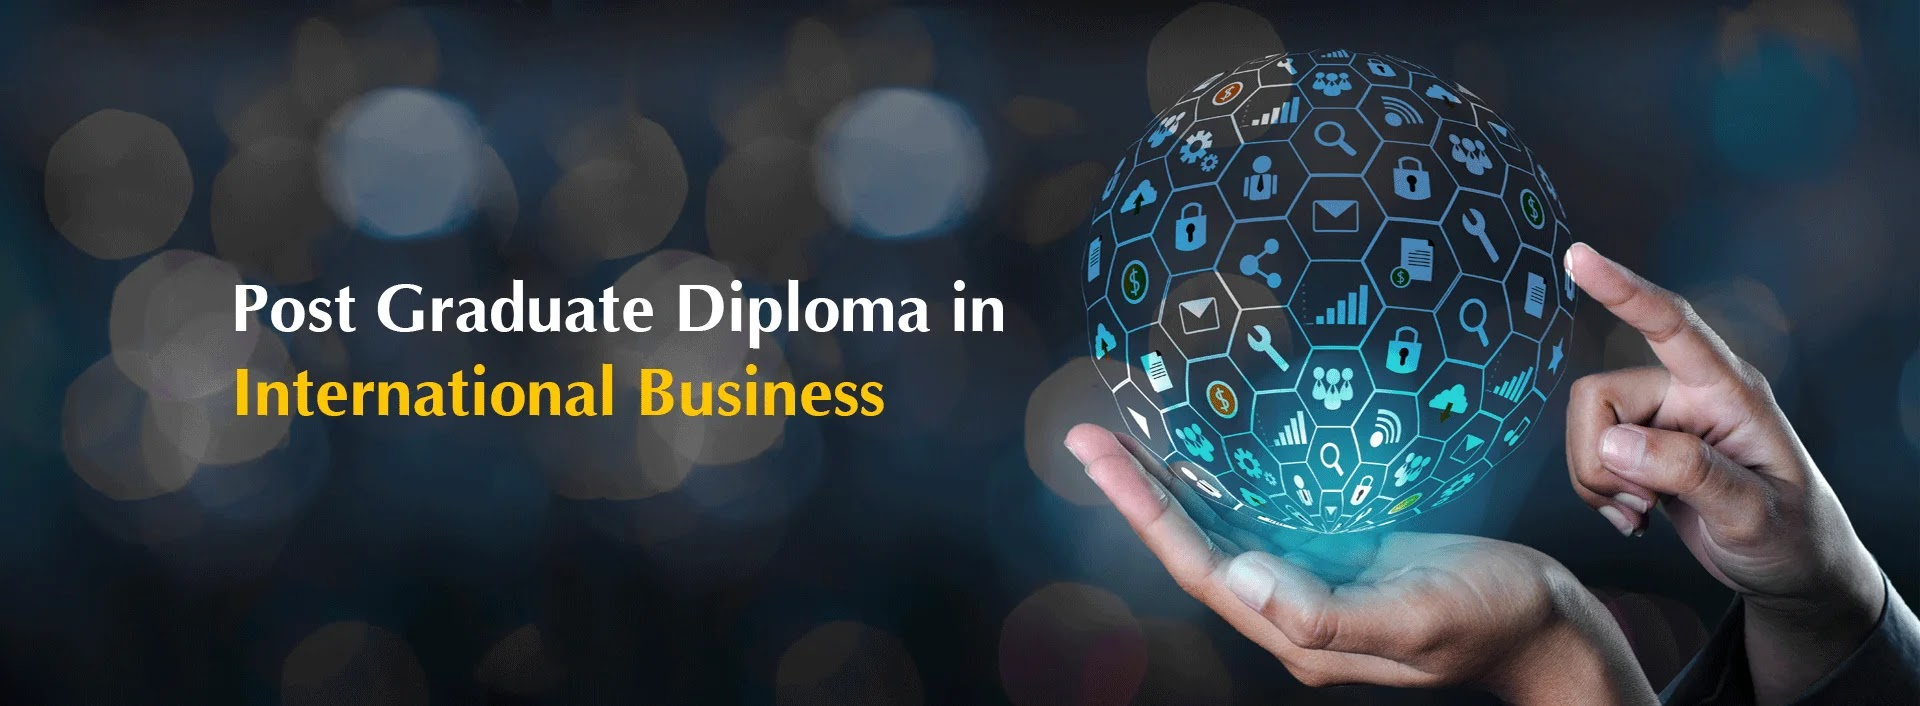 Post Graduate Diploma in International Business Course